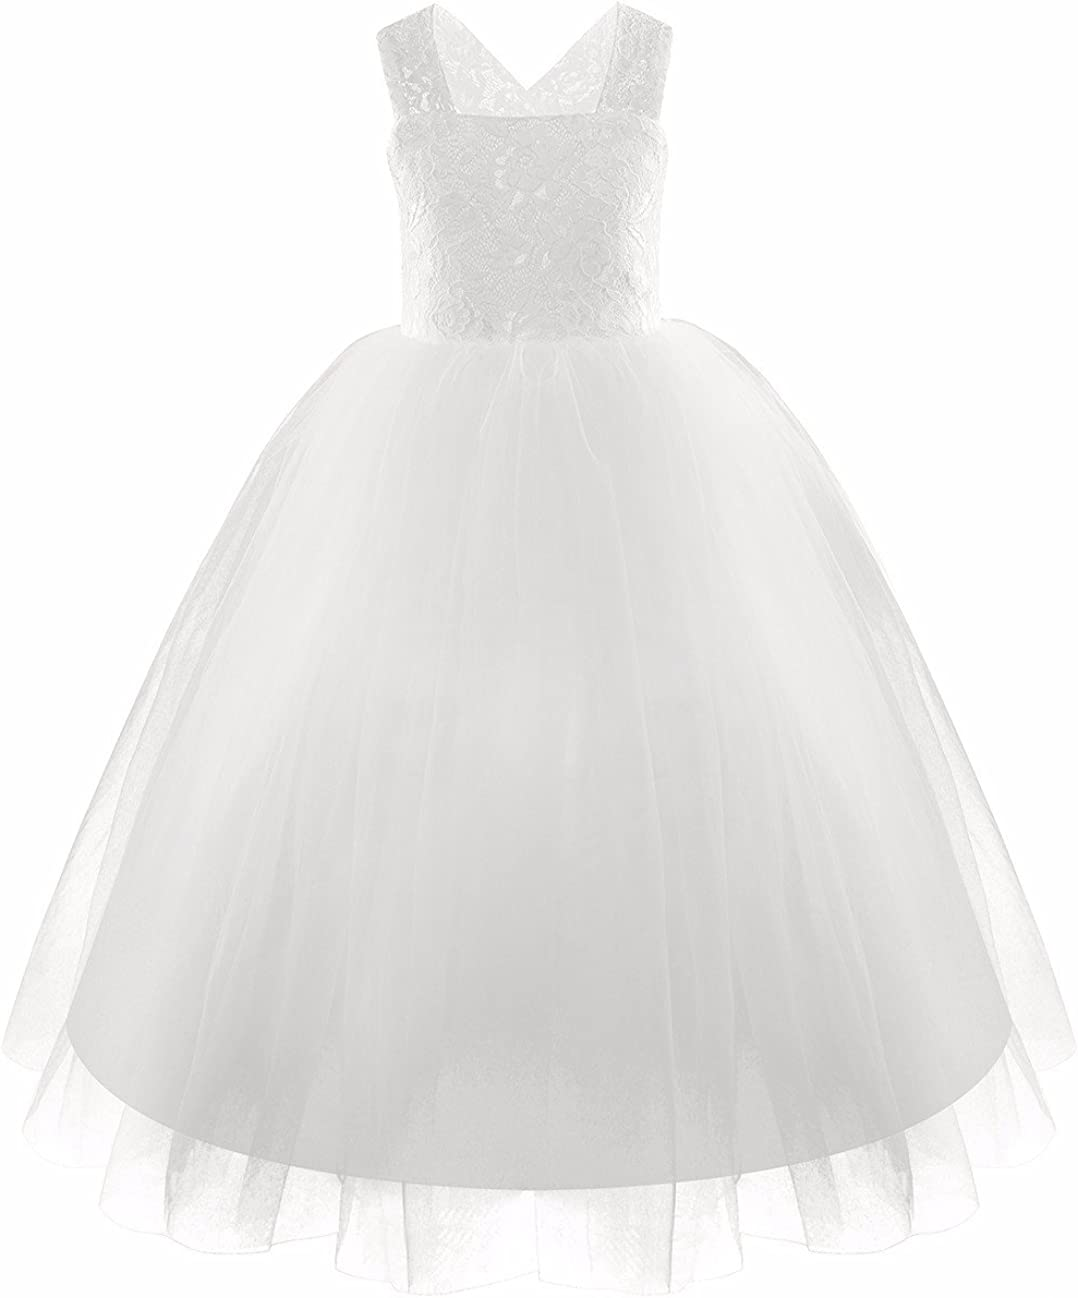 YiZYiF Kids Girls Lace Floral Tulle Flower Girl Dress Wedding Formal Party Ball Gowns